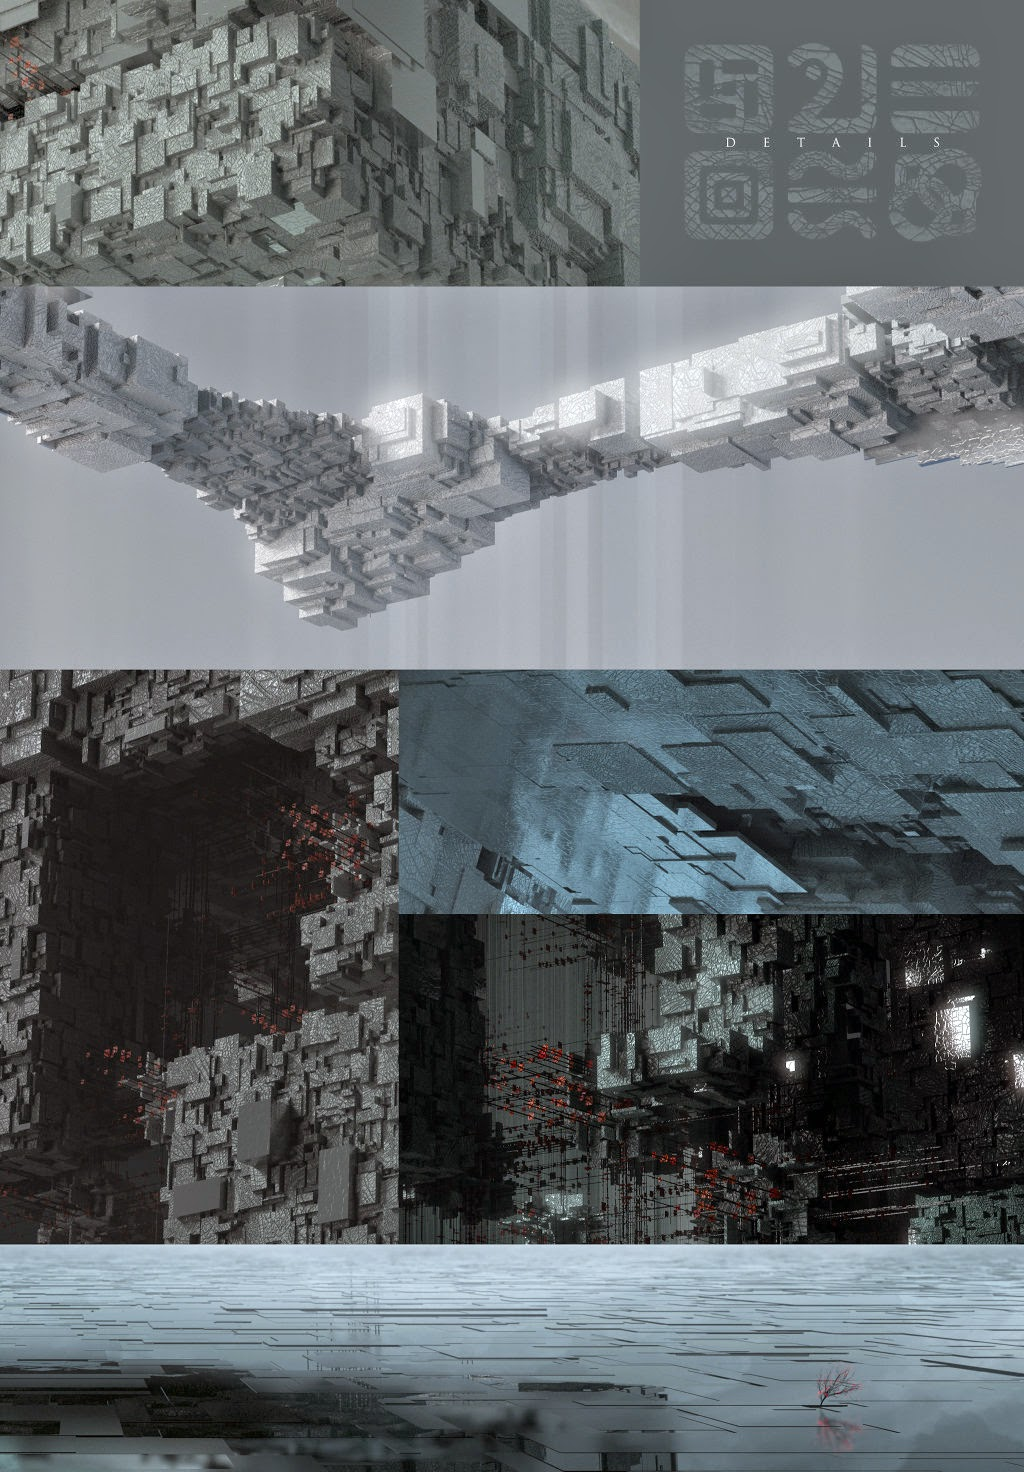 Project Tundra - Details